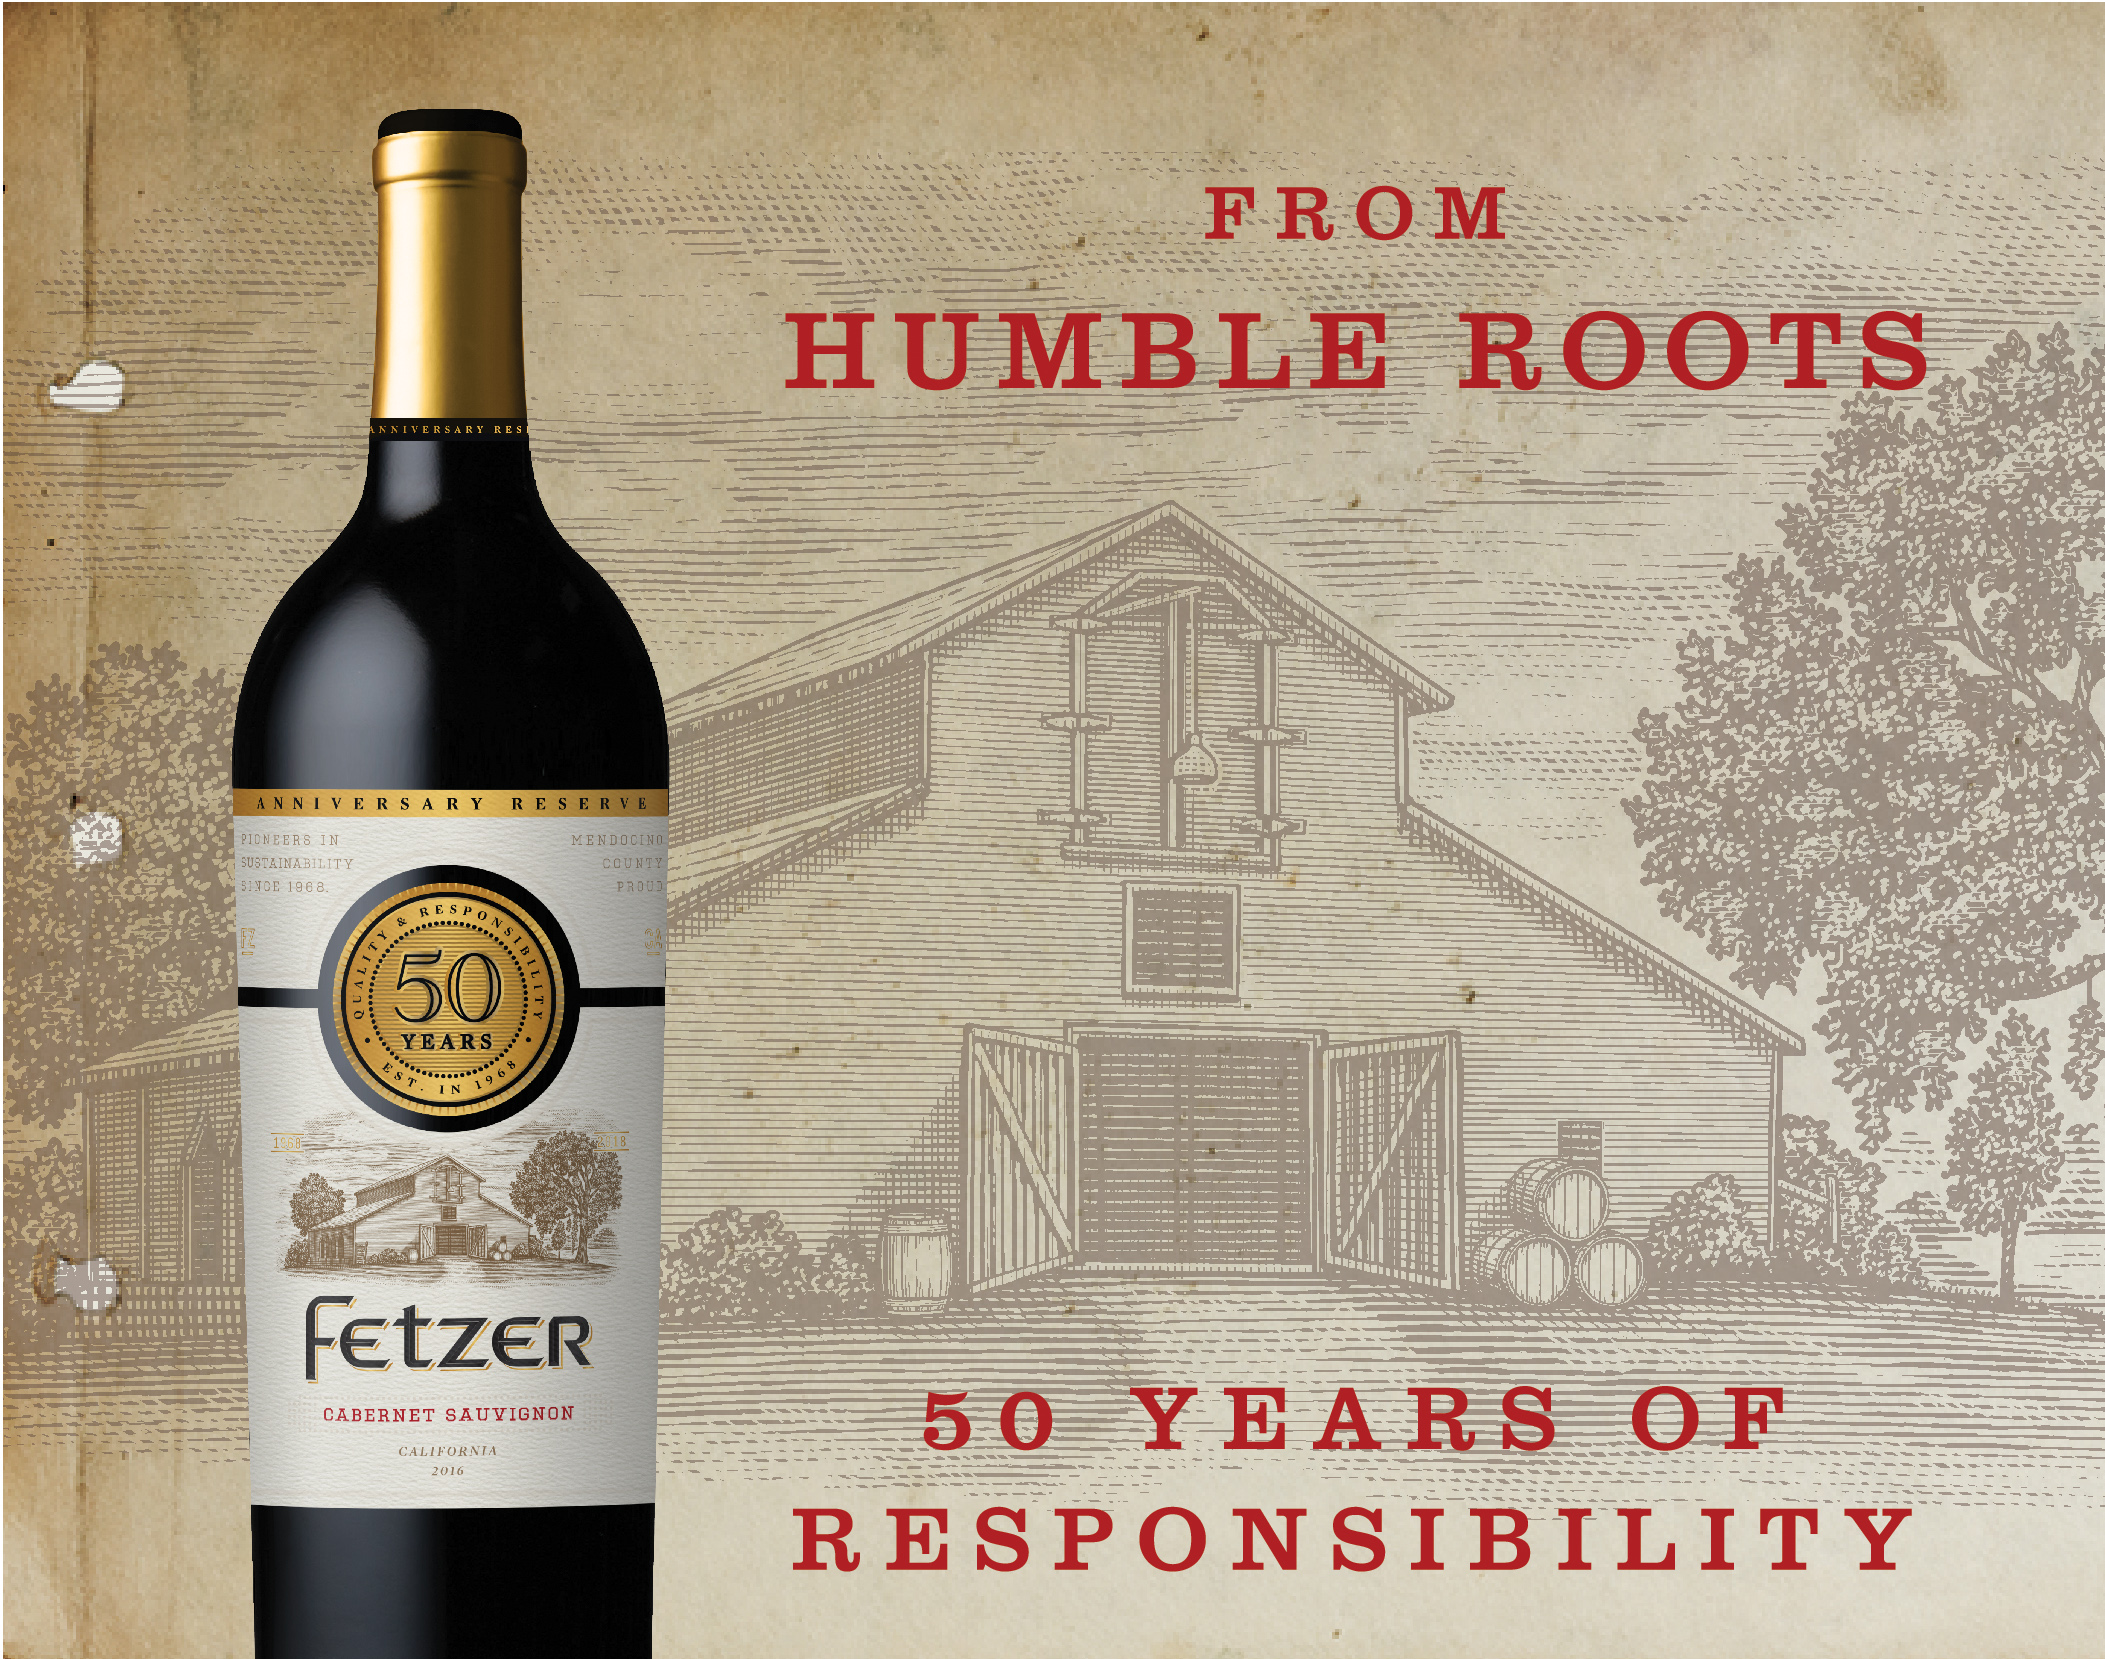 Fetzer's 50th Anniversary Cabernet Sauvignon can be found nationwide (SRP: $12.99)